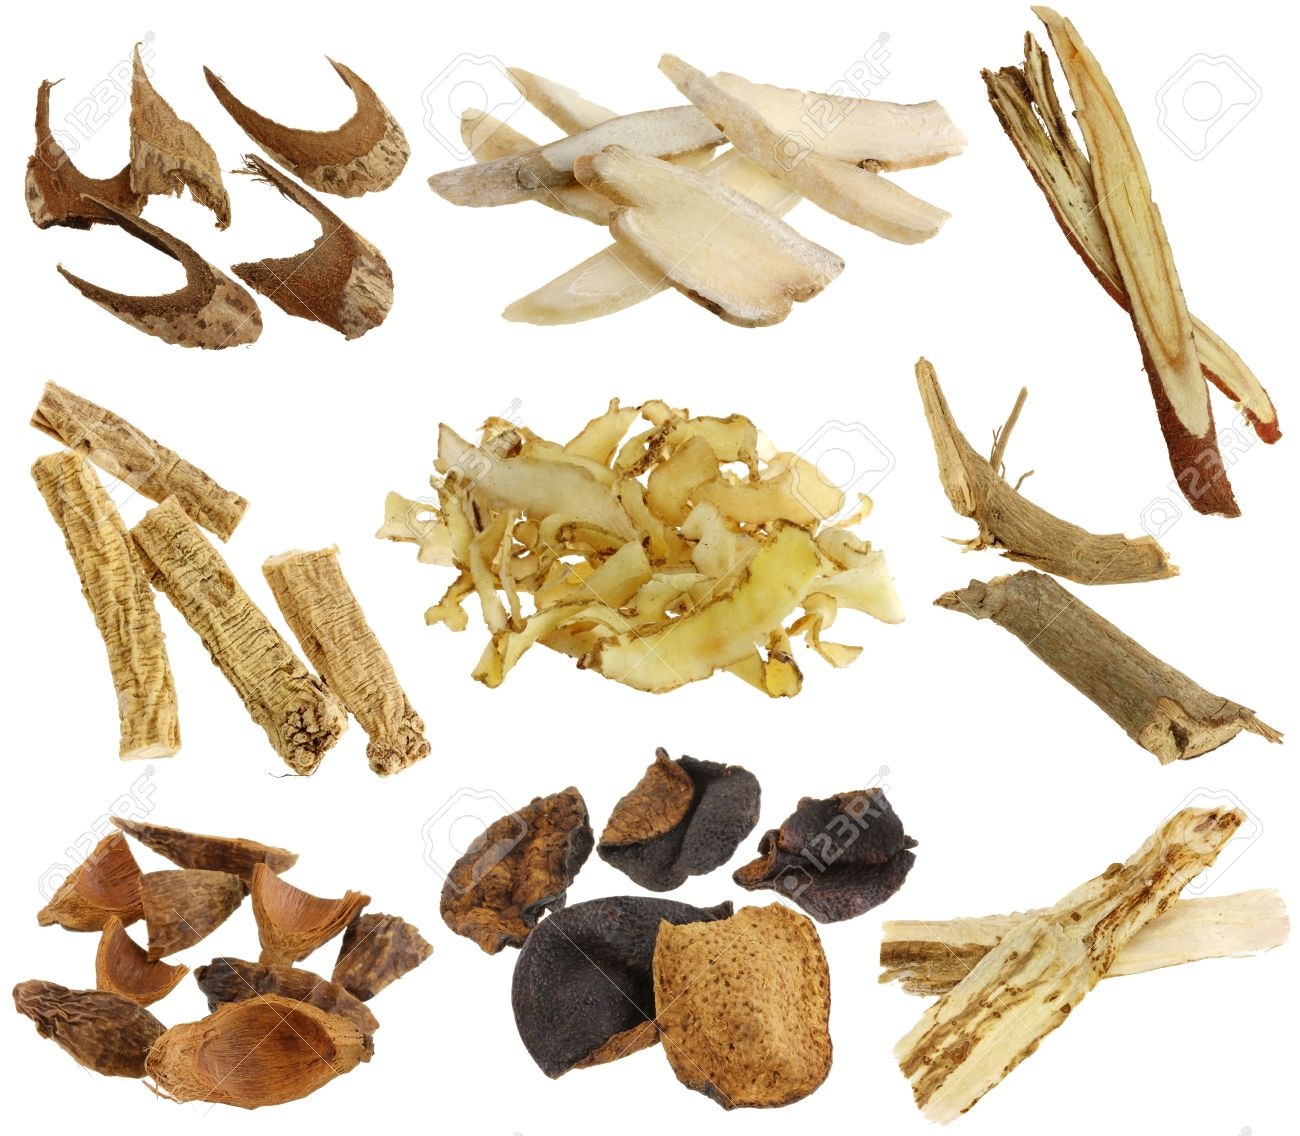 Chinese herbal treatment - Herbal Medicine Assortment Of Dried Chinese Herbs Isolated On White Background White Peony Root